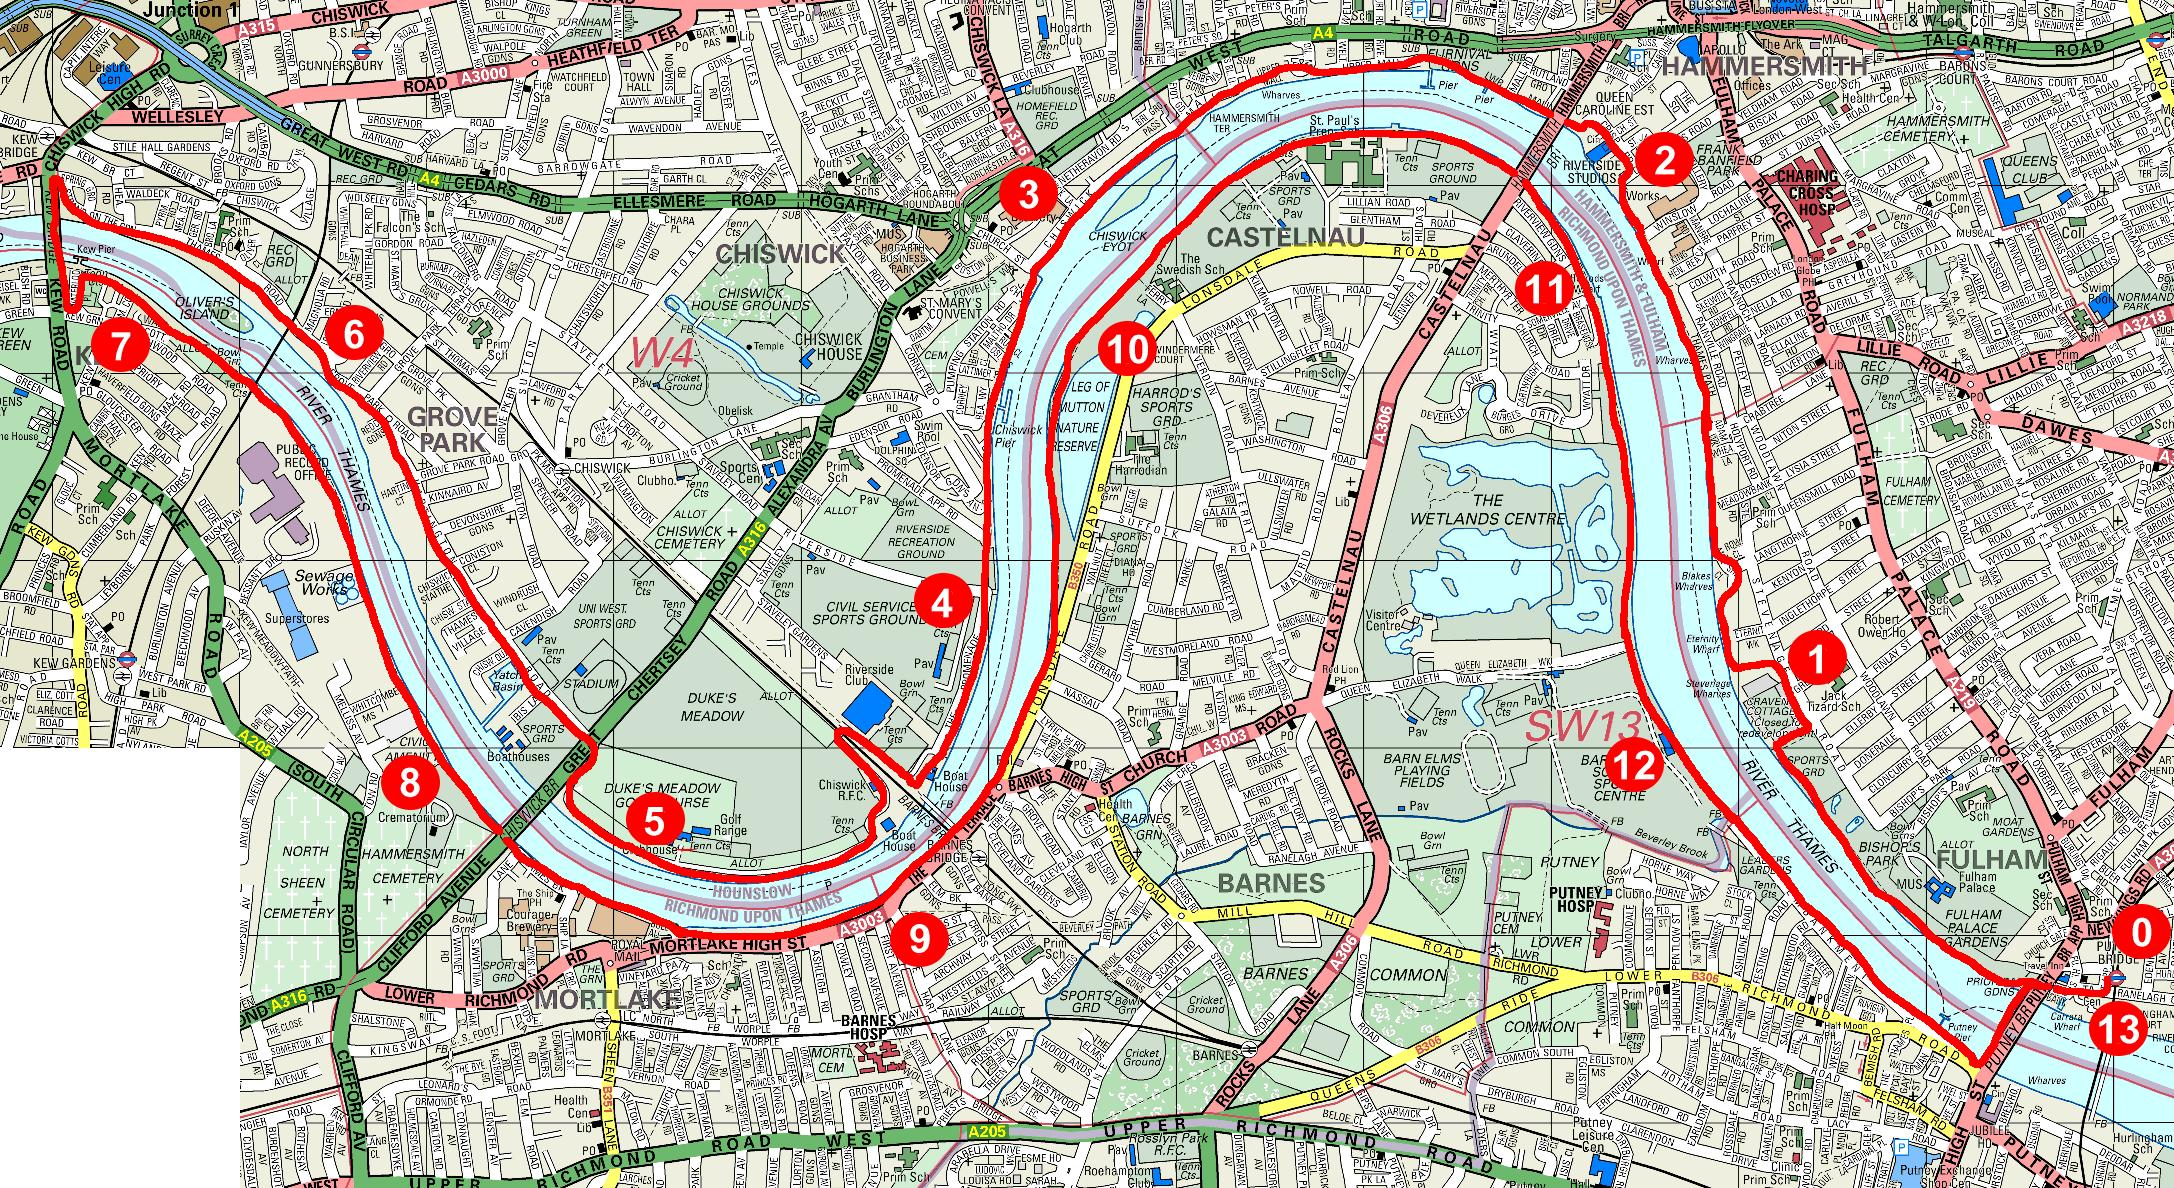 london map with landmarks html with Run Routes 05 Index on Attraction Review G187529 D574566 Reviews Cullera Valencia Valencia Province Valencian Country further M3 0048 in addition LocationPhotos G186277 Seaford East Sussex England likewise File Islington Met  B Ward Map 1916 besides Stock Vector Philadelphia Pennsylvania Area Map.